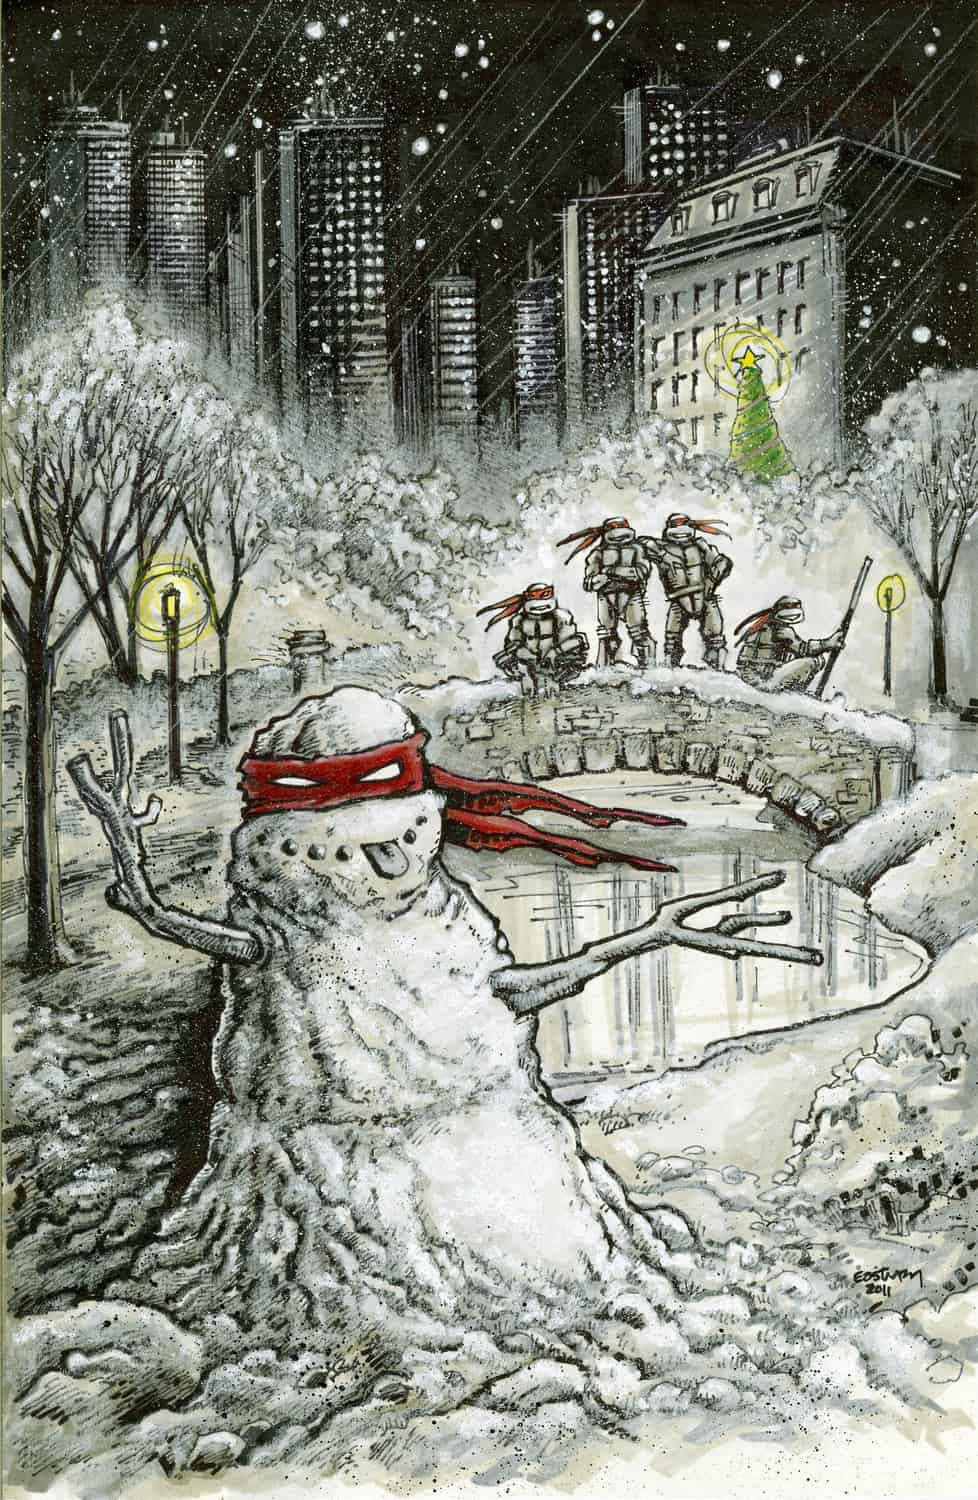 Merry christmas tmnt teenage mutant ninja turtlestmnt merry christmas tmnt fans hope you have a wonderful day with your friends and family re va comicon front sciox Image collections